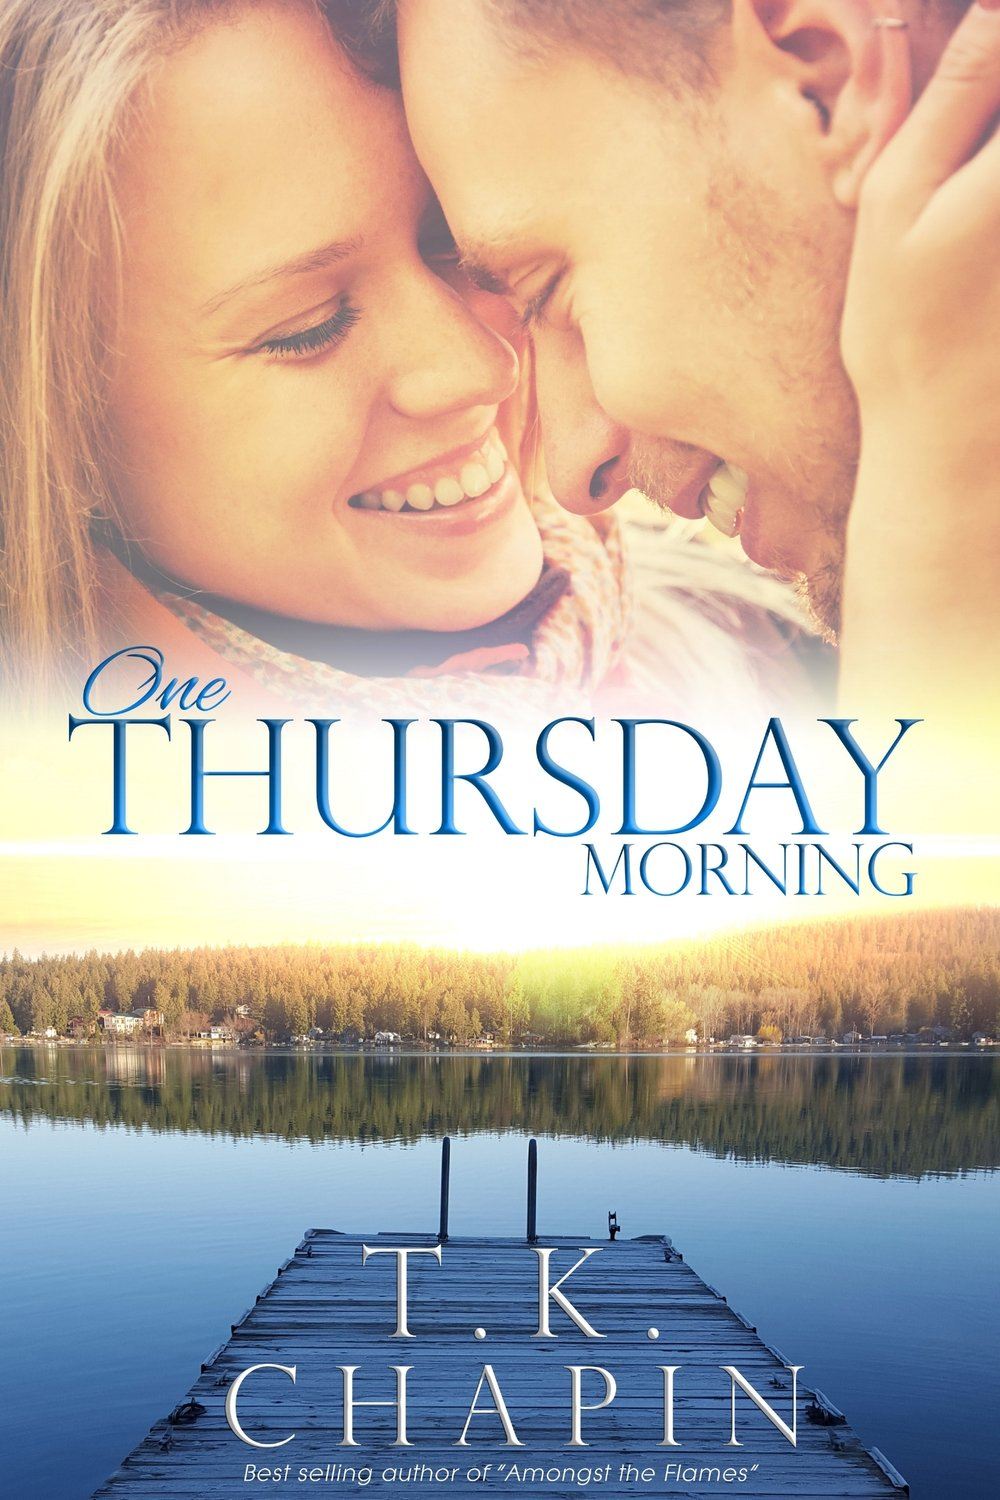 One Thursday Morning - T.K. Chapin    Running not only for her own life, but that of her unborn baby, Serenah moves across the country in the hopes of starting over.